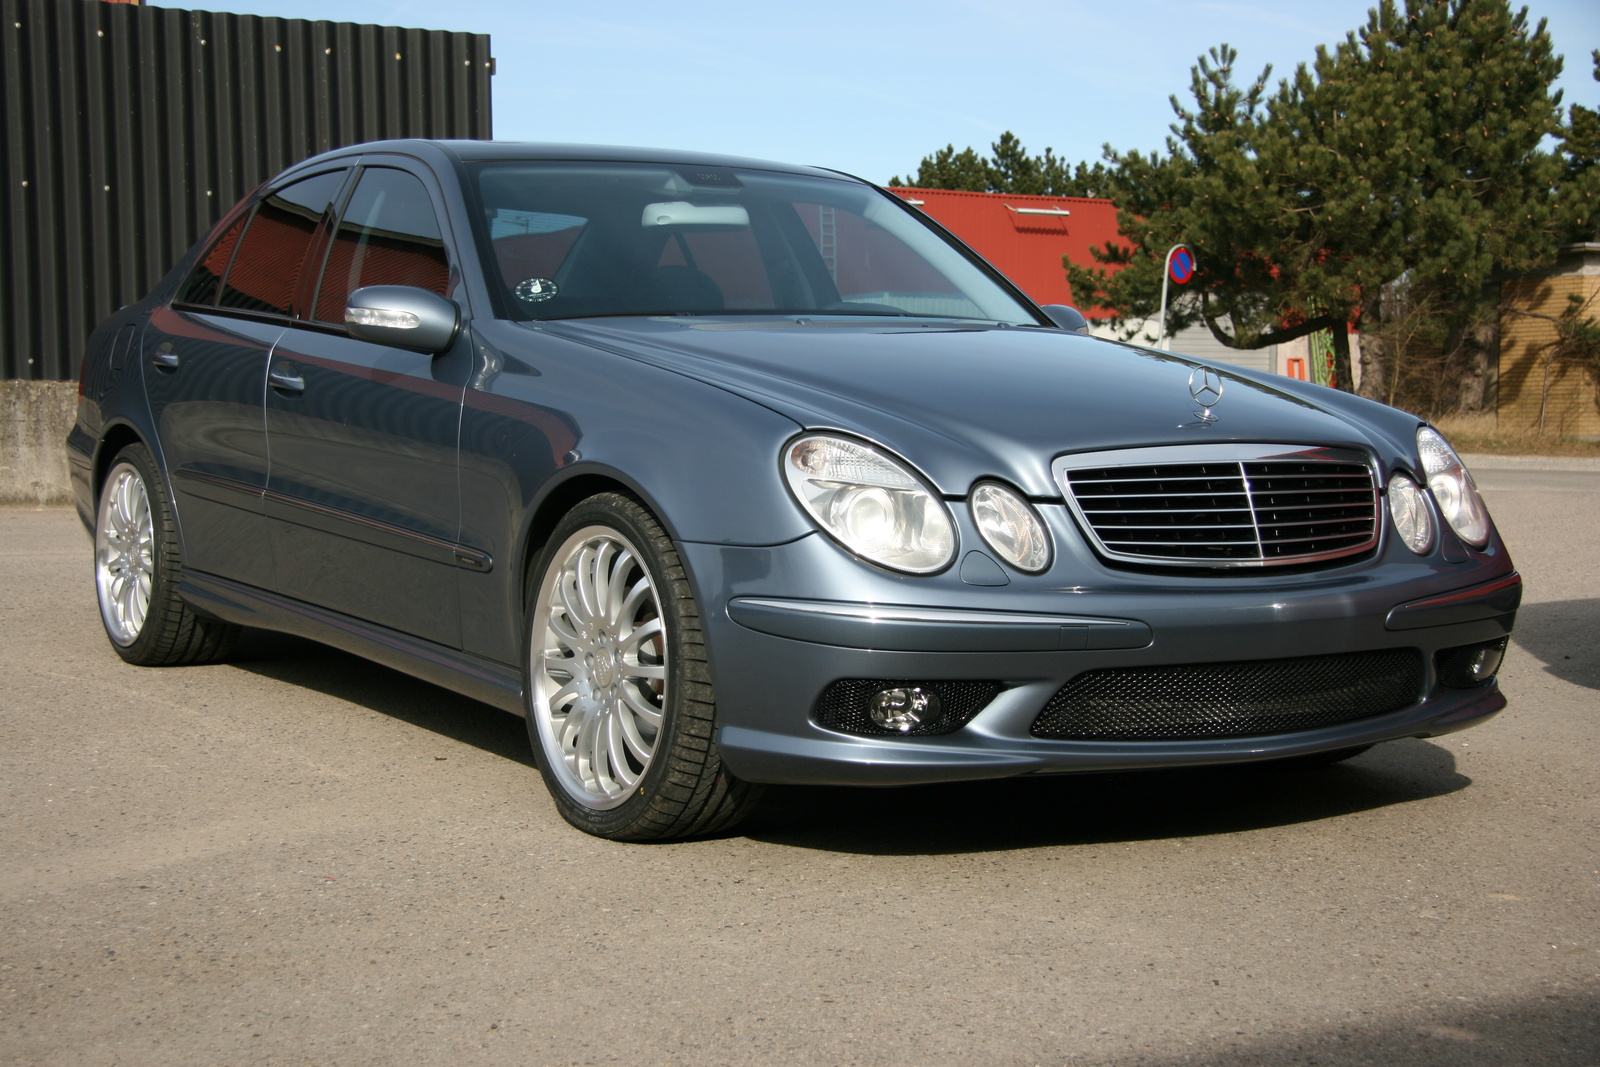 2004 Mercedes Benz E320 Wagon Reliability